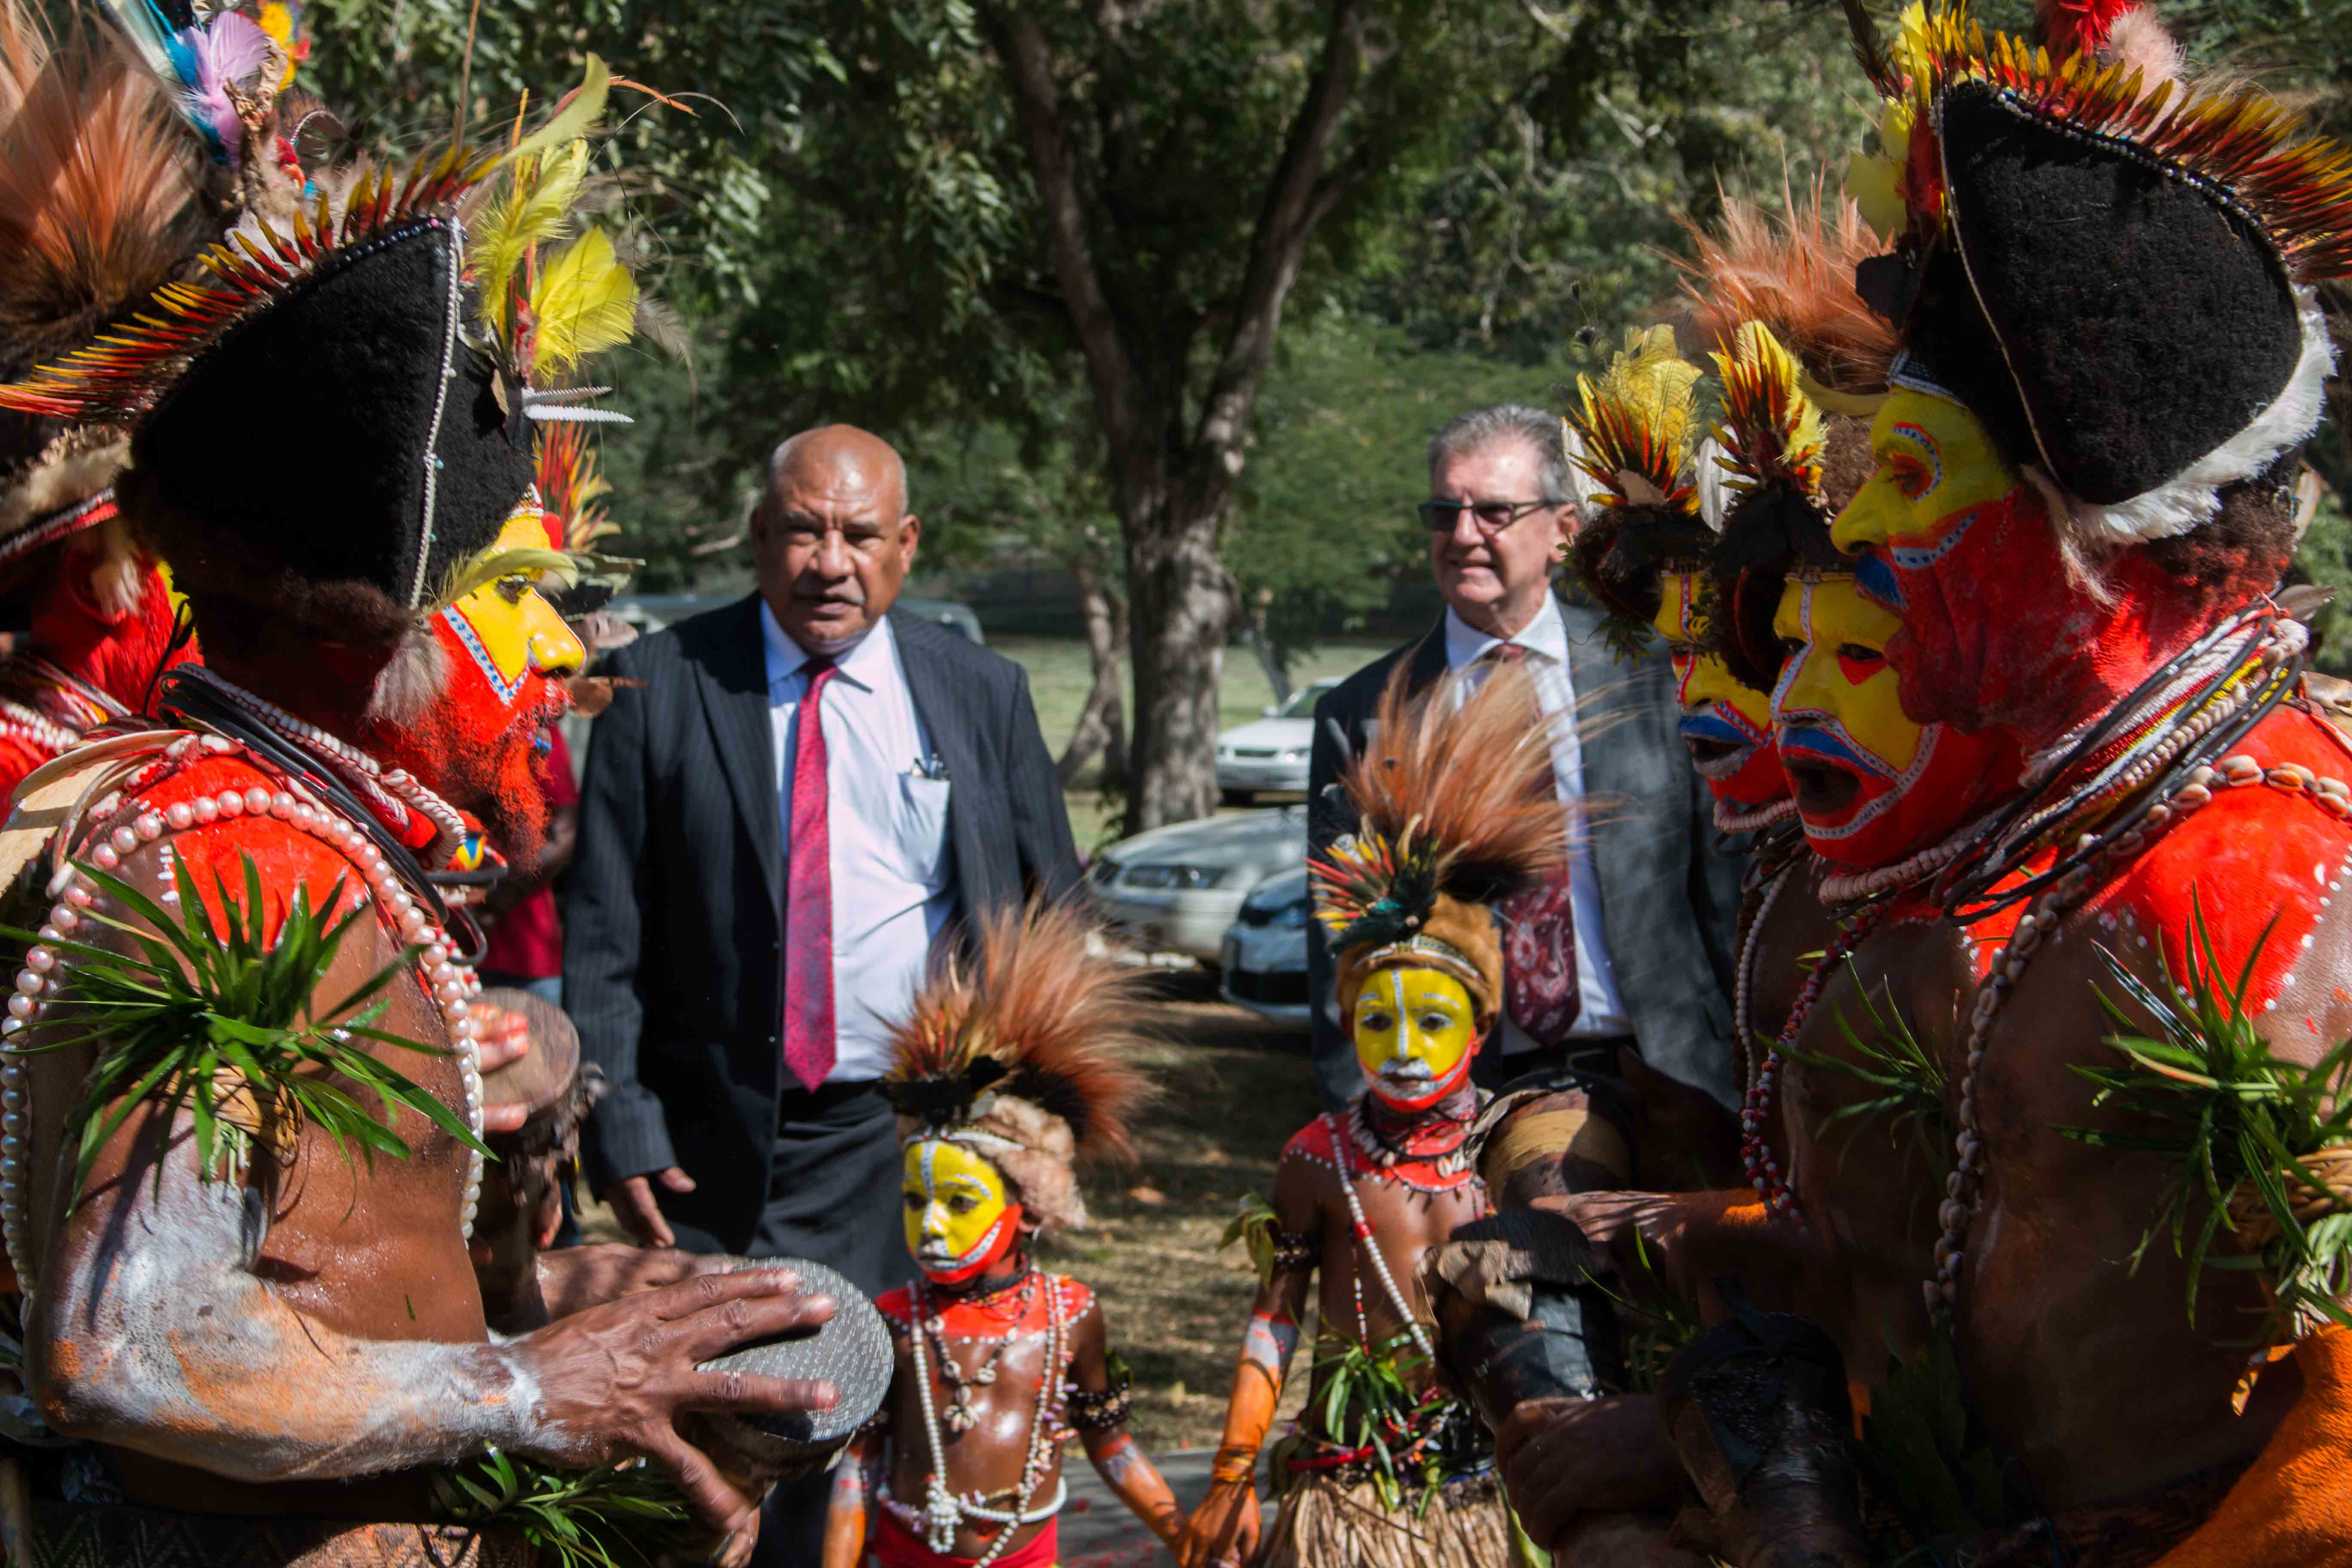 Australian High Commissioner Bruce Davis and DPM Secretary John Kali were welcomed to PNGIPA by a singsing group from Tari, Hela Province